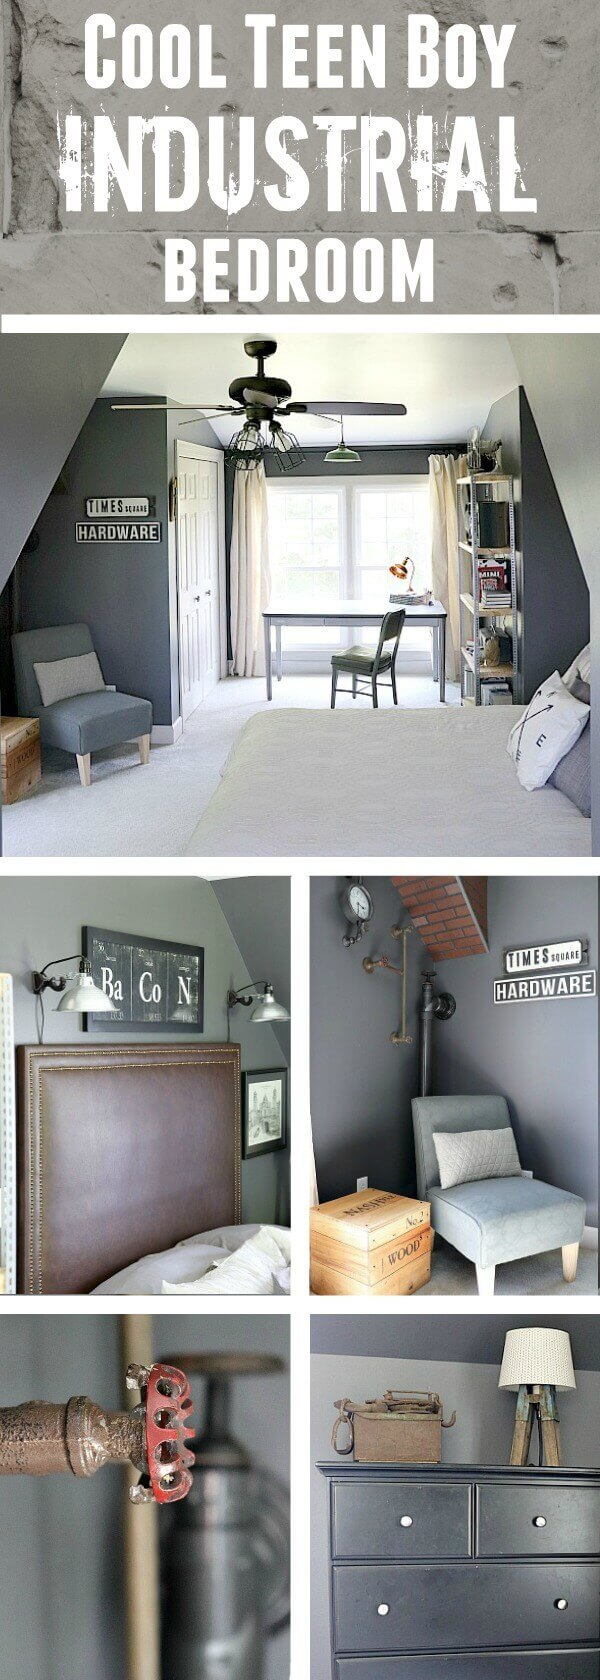 Industrial Teenage Bedroom Makeover On A Budget Orc Reveal Noting